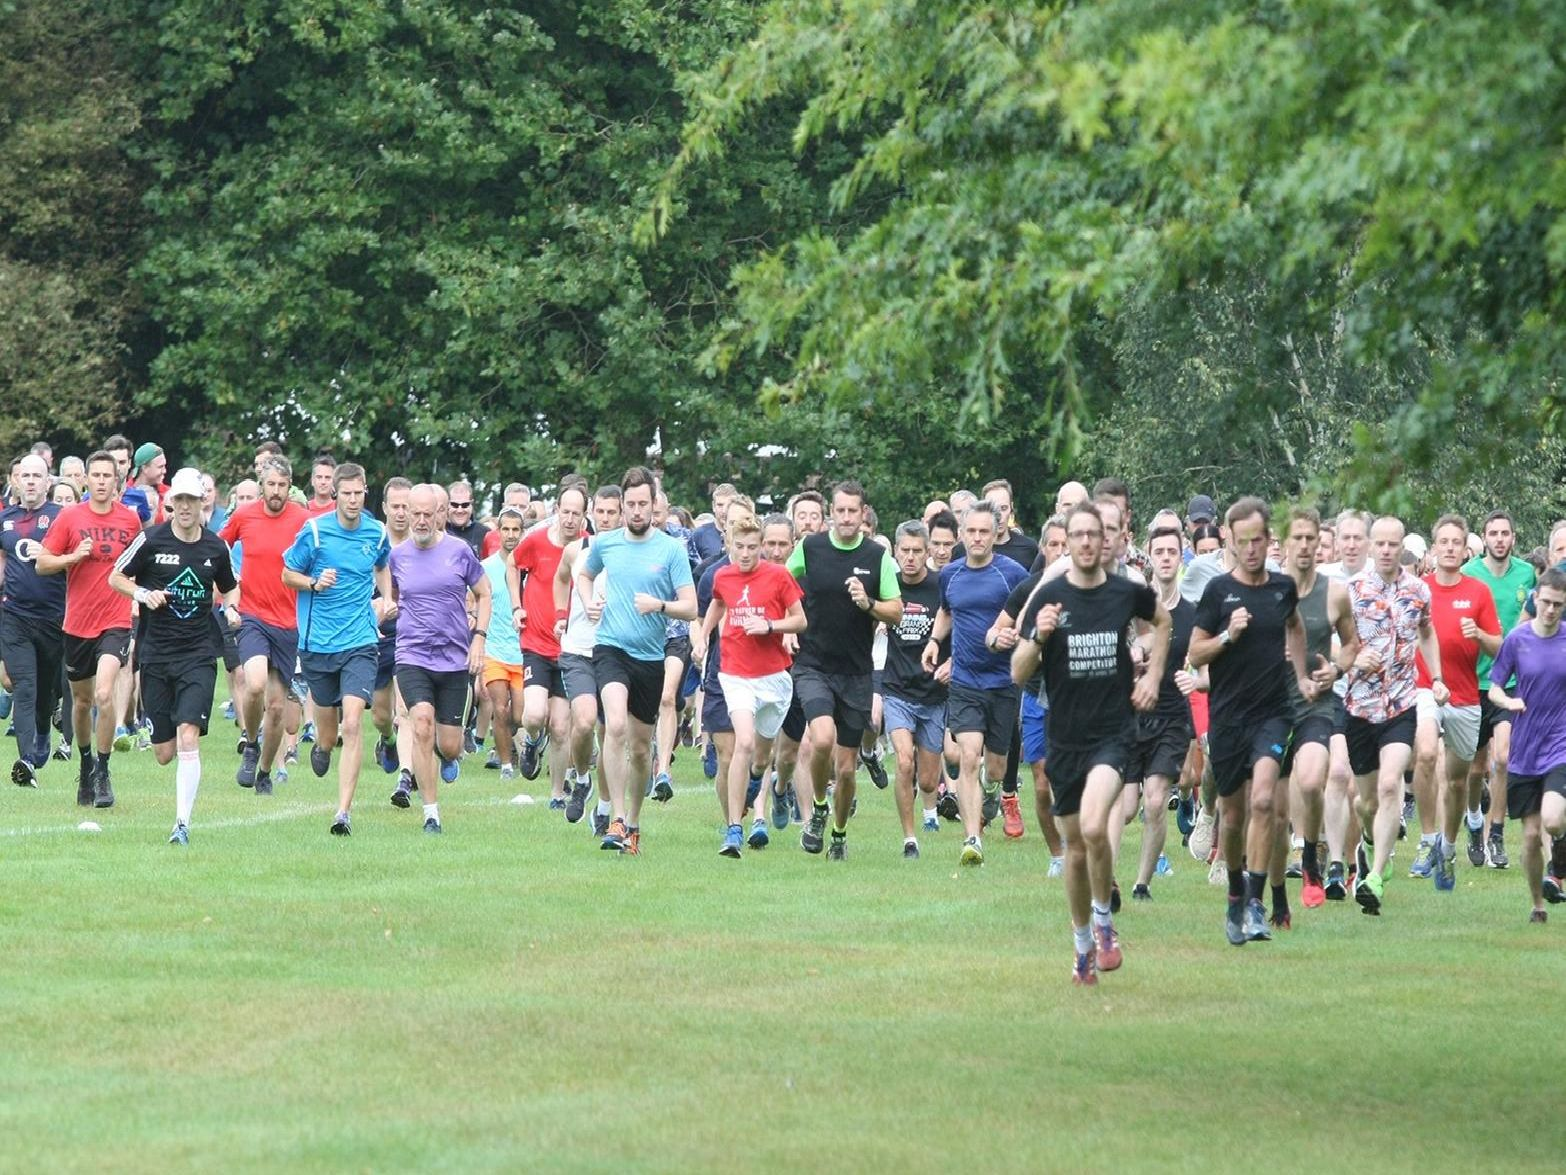 Action from Horsham parkrun's fifth anniversary